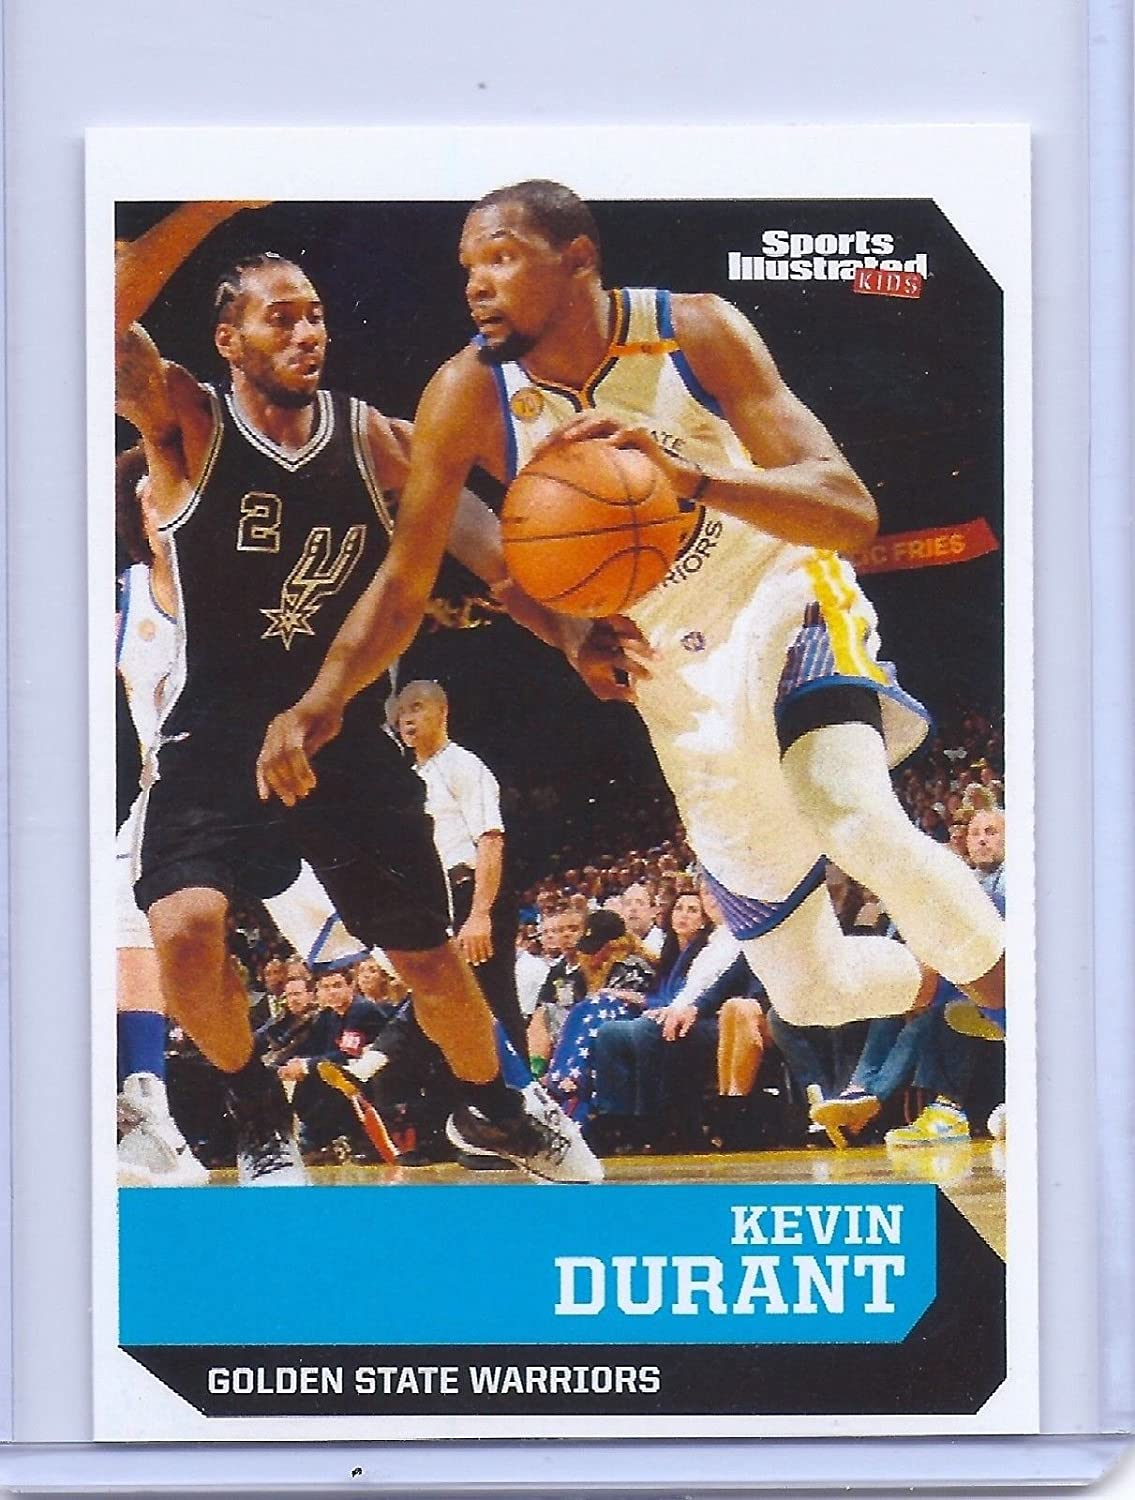 KEVIN DURANT 2006//2017 1ST EVER PRINTED ROOKIE CARD LOT! Sports Illustrated 2